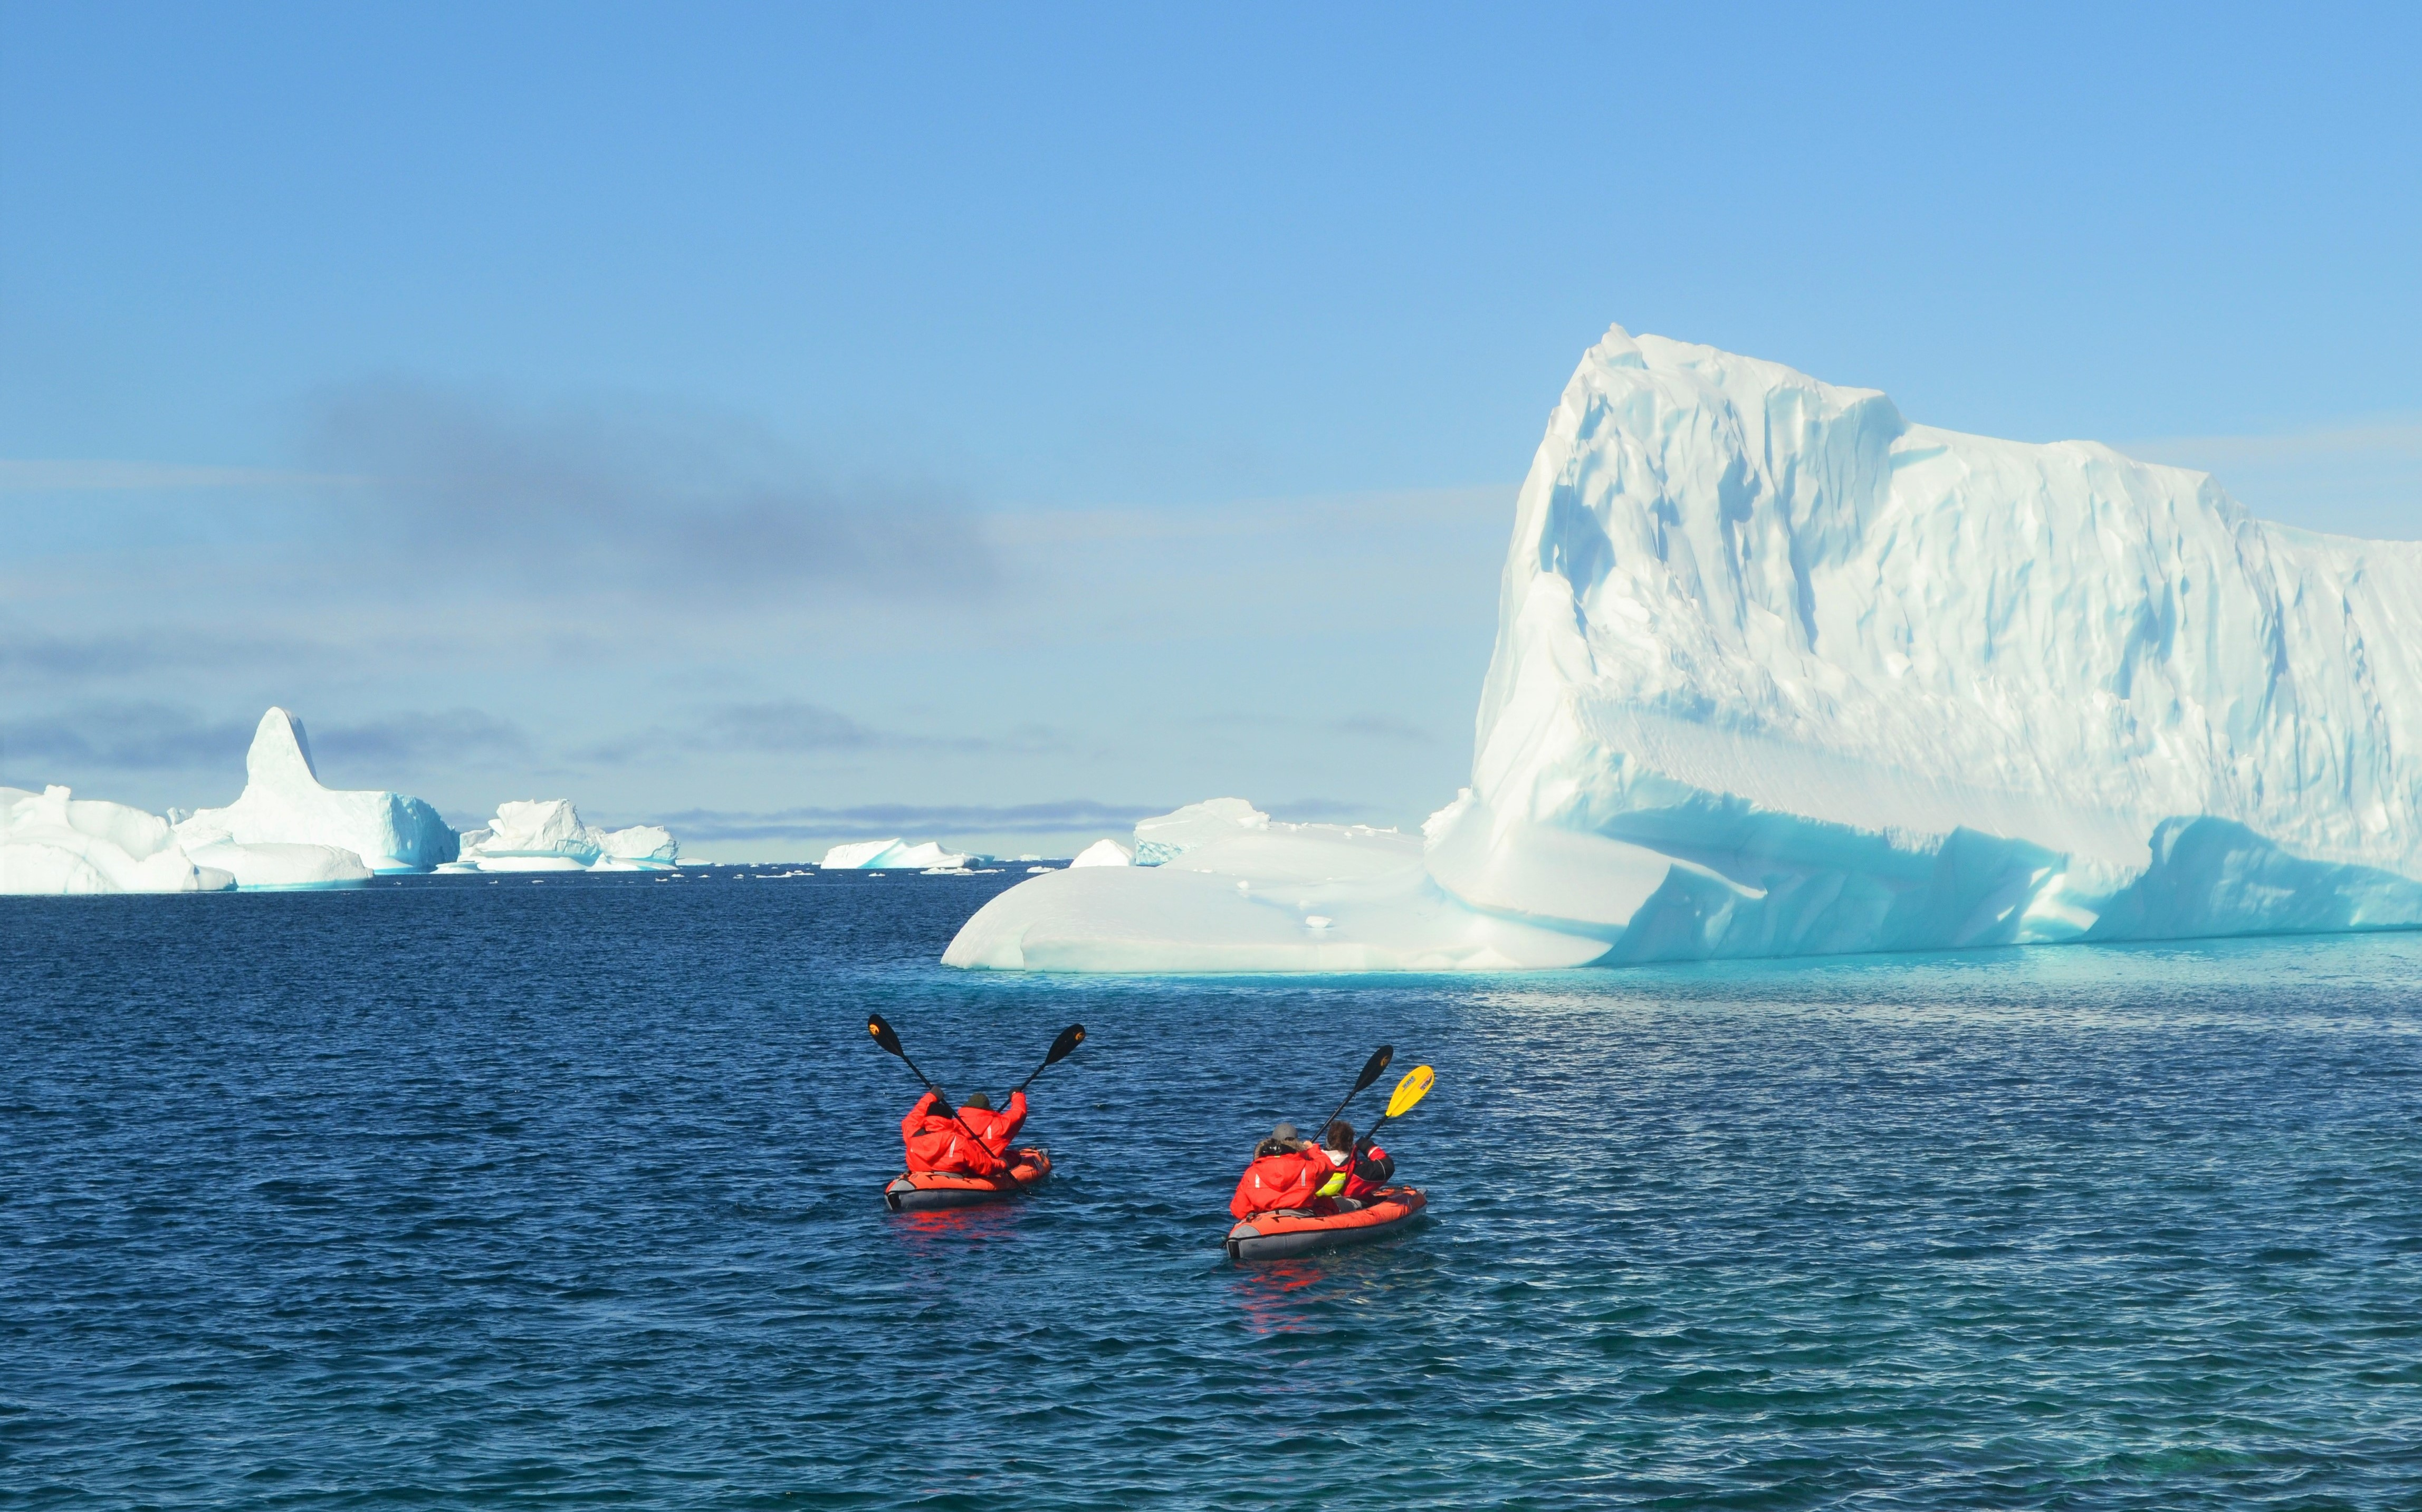 kayaking in the arctic summer towards glaciers